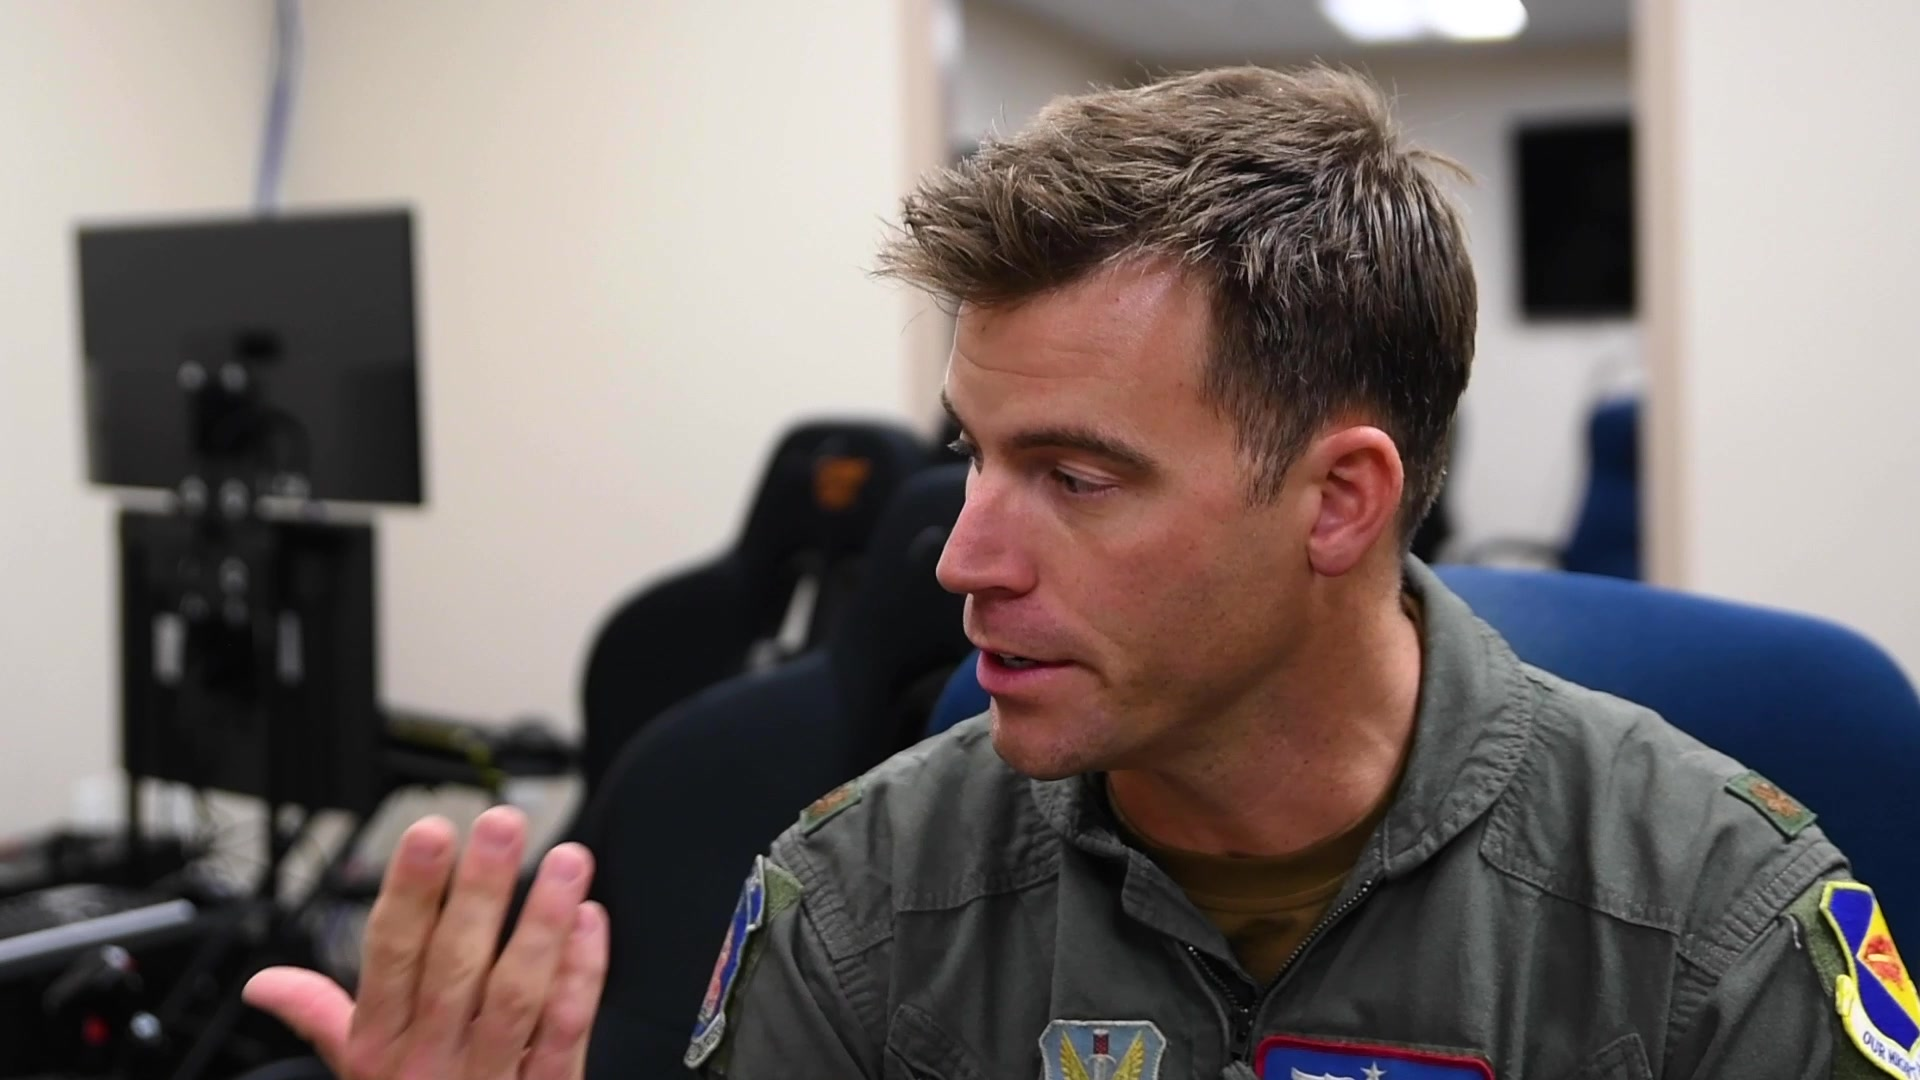 Video of 355th Training Squadron at Davis-Monthan Air Force Base implementing an  A-10 Thunderbolt II virtual reality simulator lab.